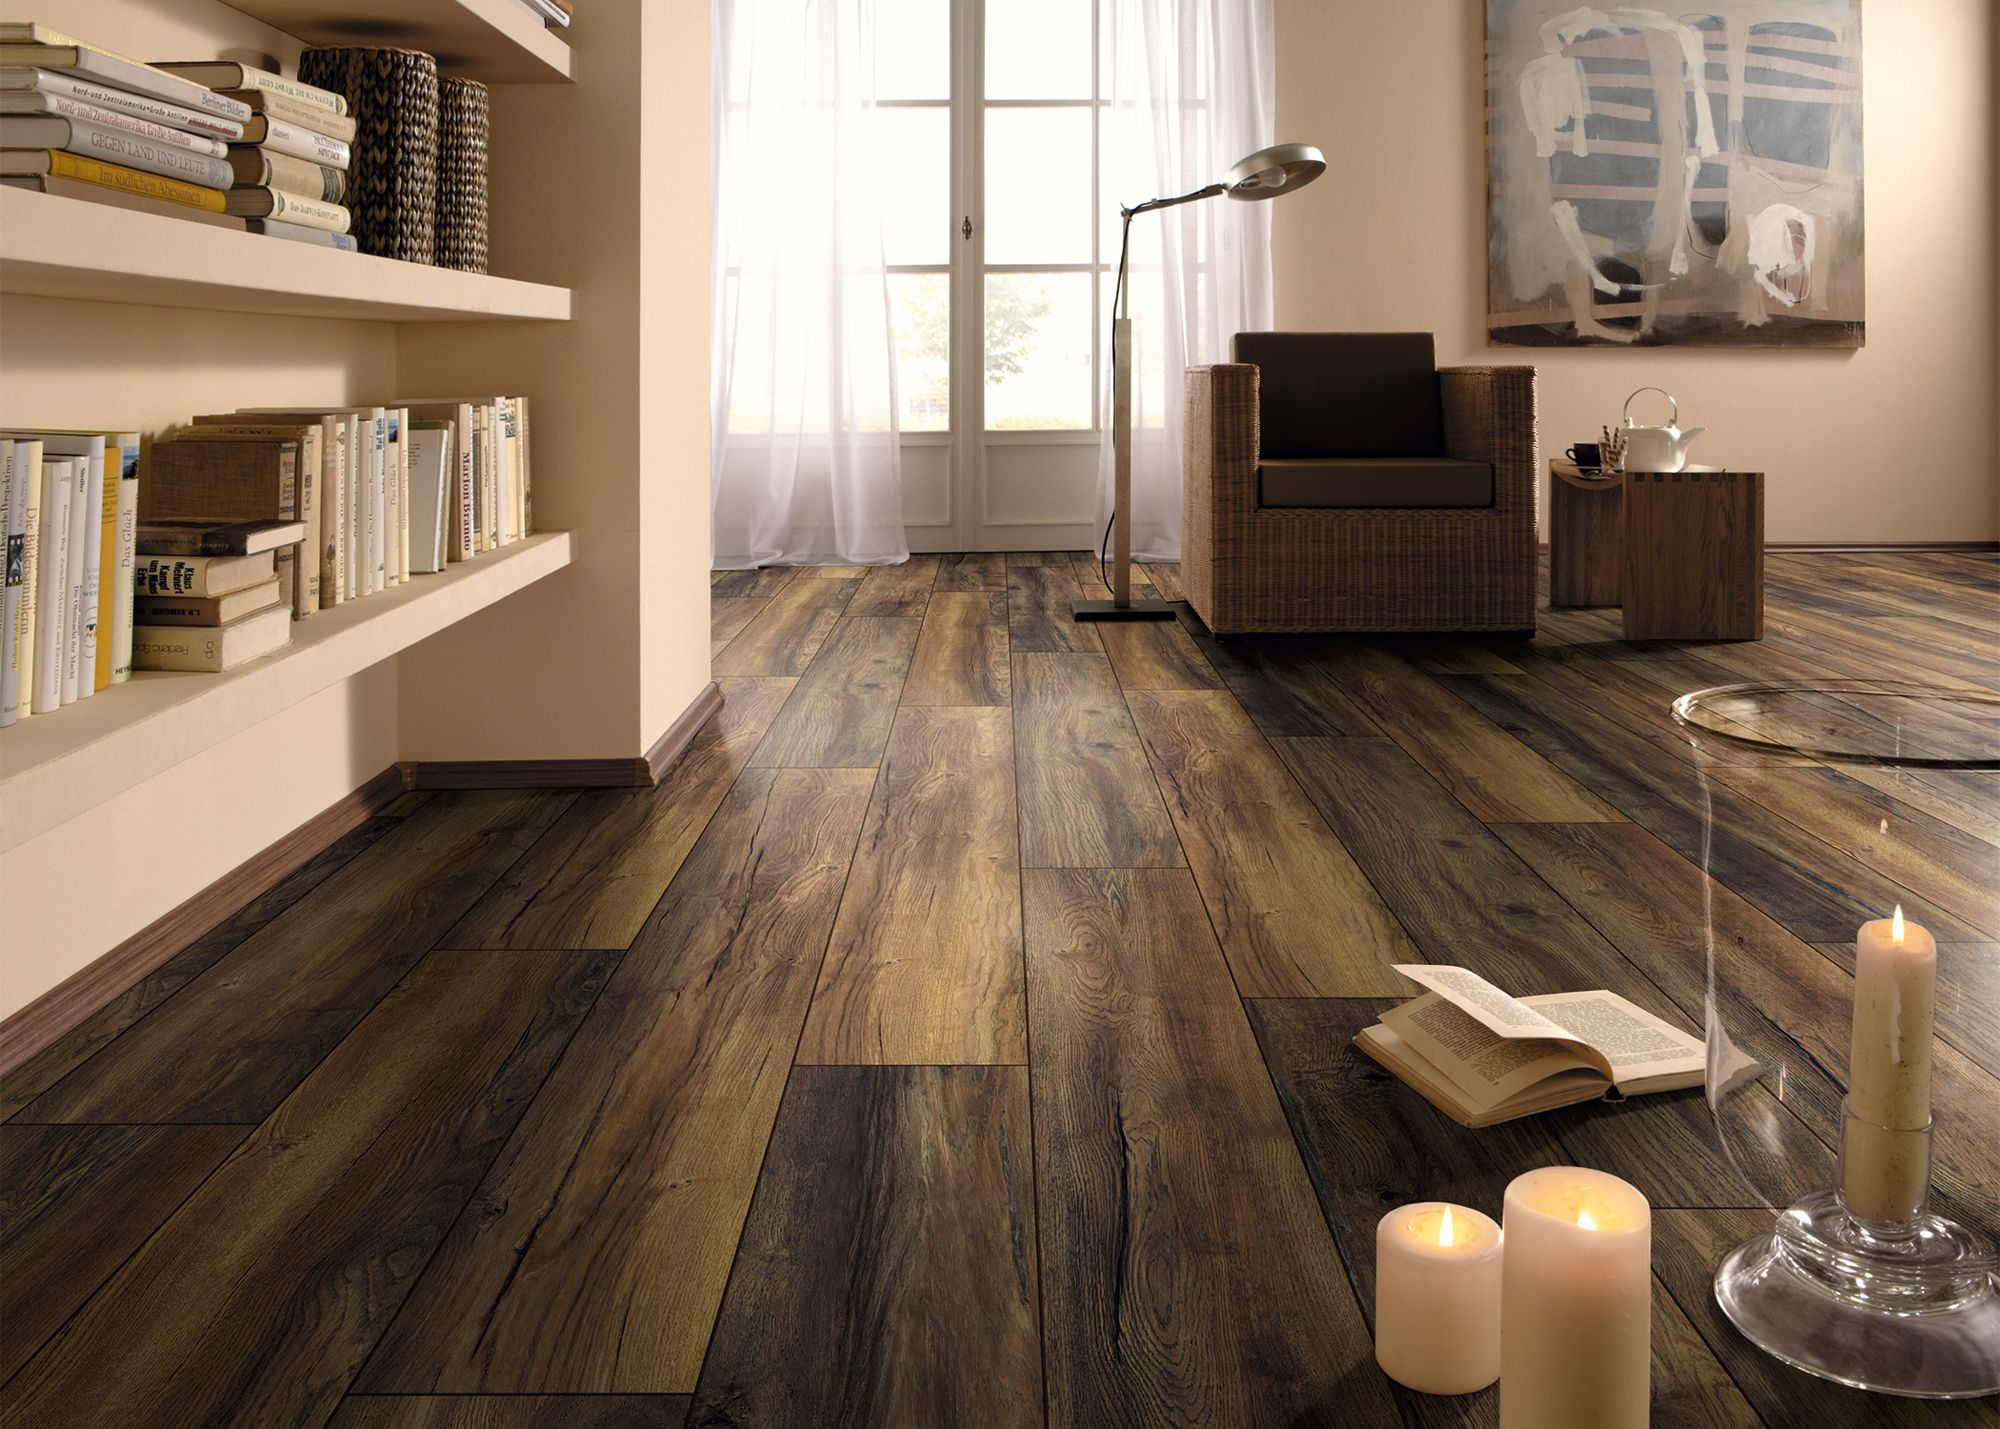 new haven harbor oak a dream home laminate see the summer new haven harbor oak a dream home laminate see the summer retreat collection